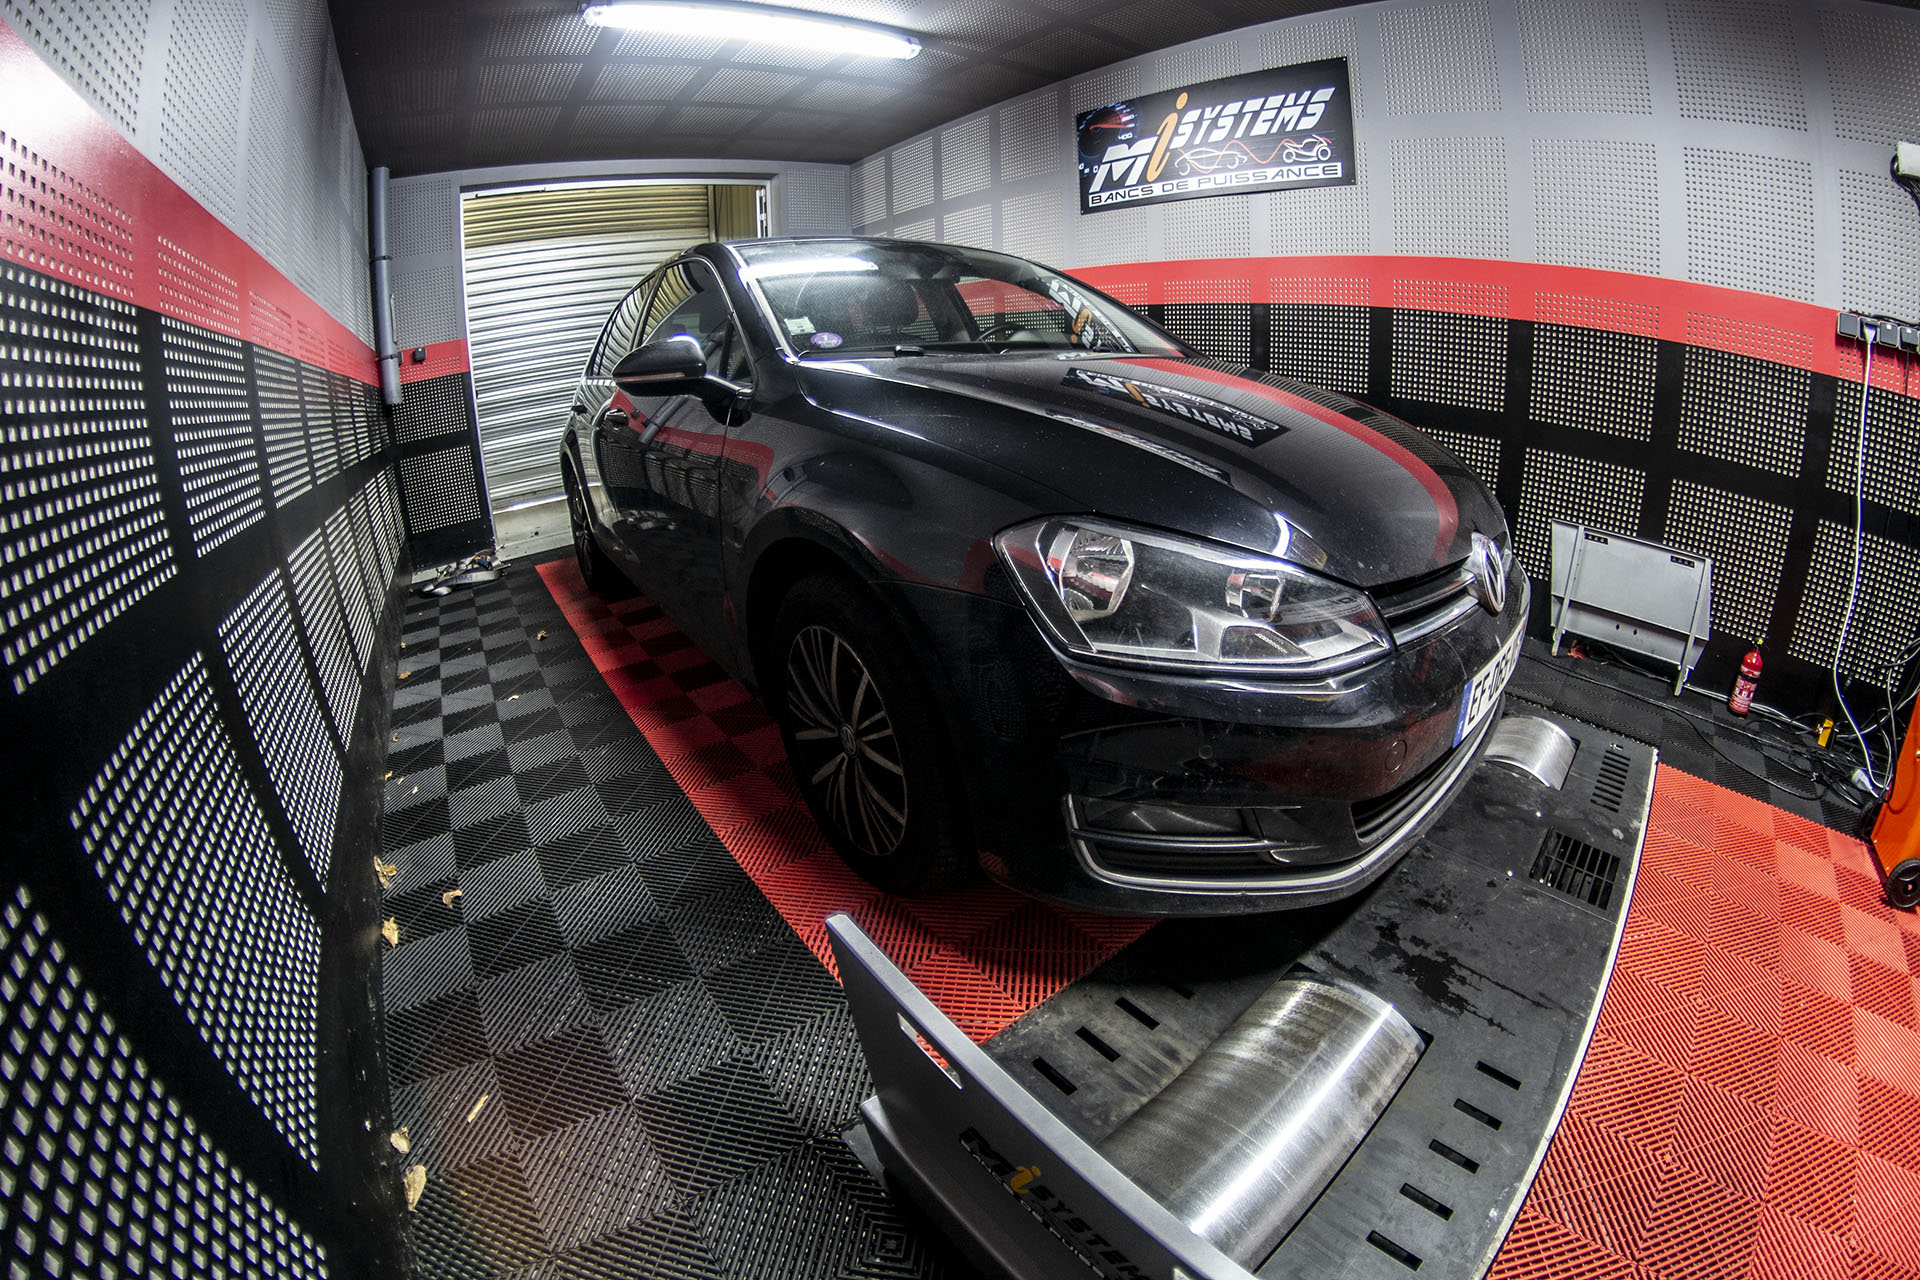 Conversion Ethanol Golf 7 1.4 TSI